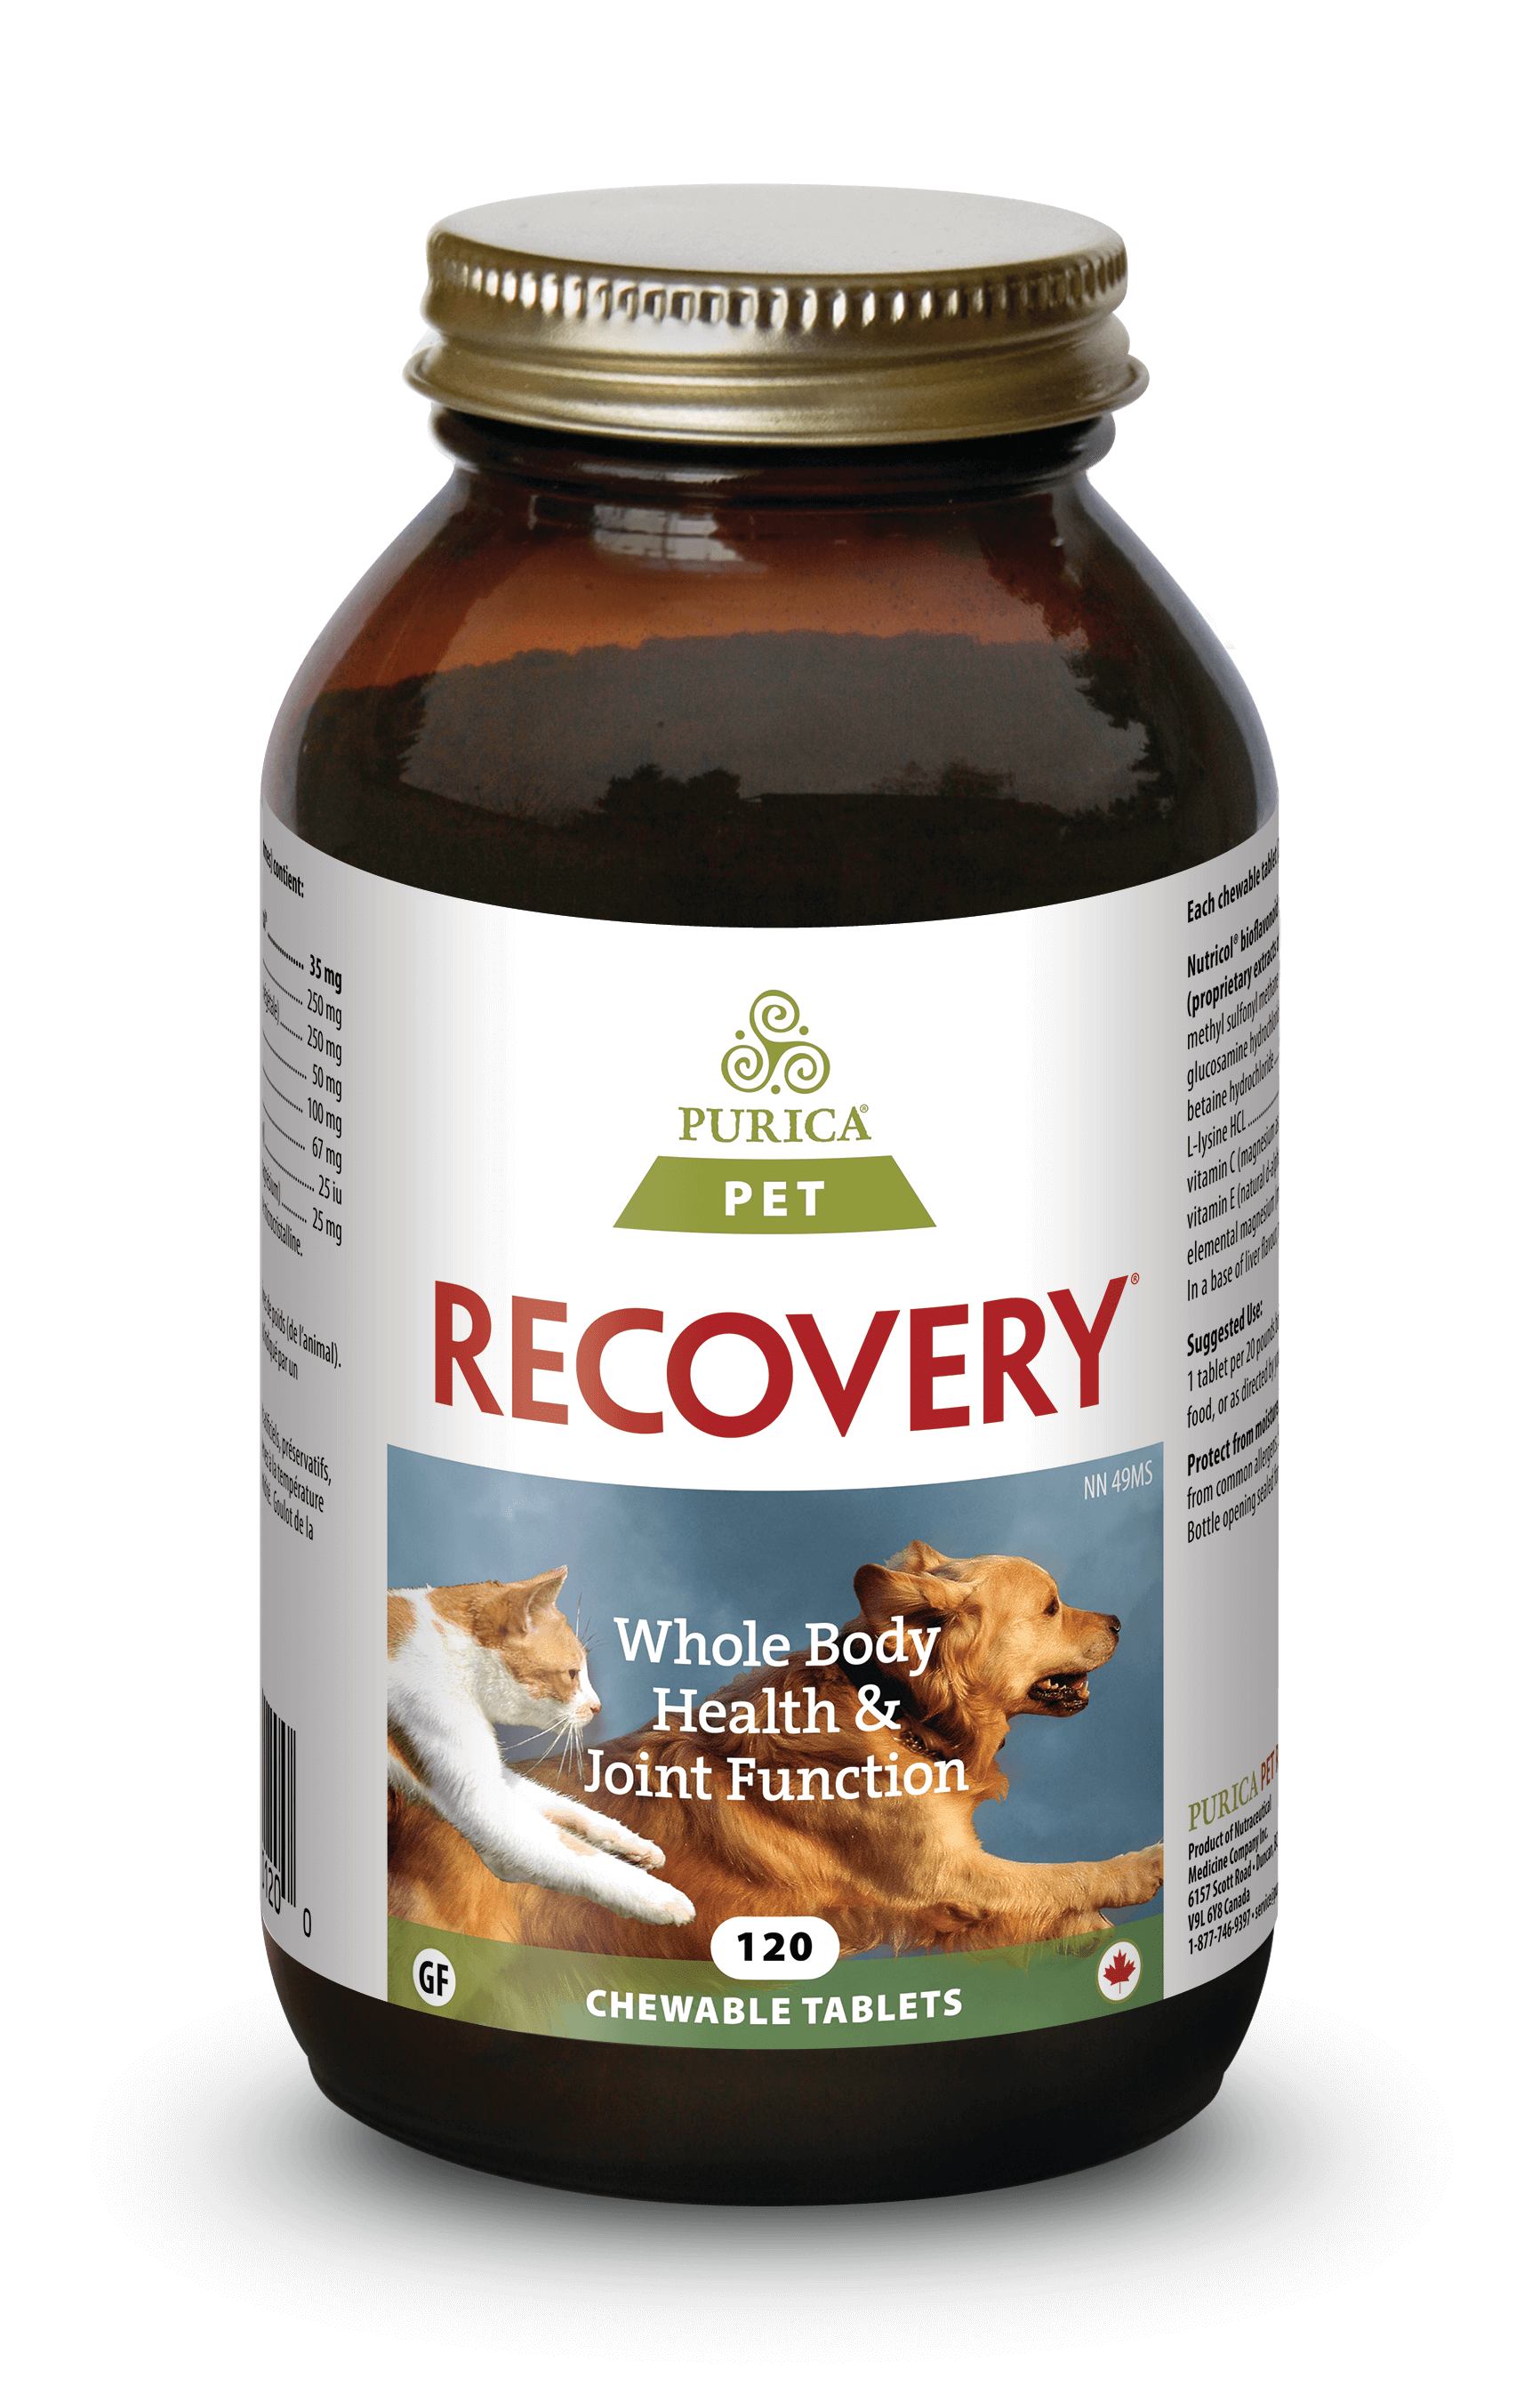 Purica Recovery Chewable Tablets Dog & Cat Supplement, 120-count